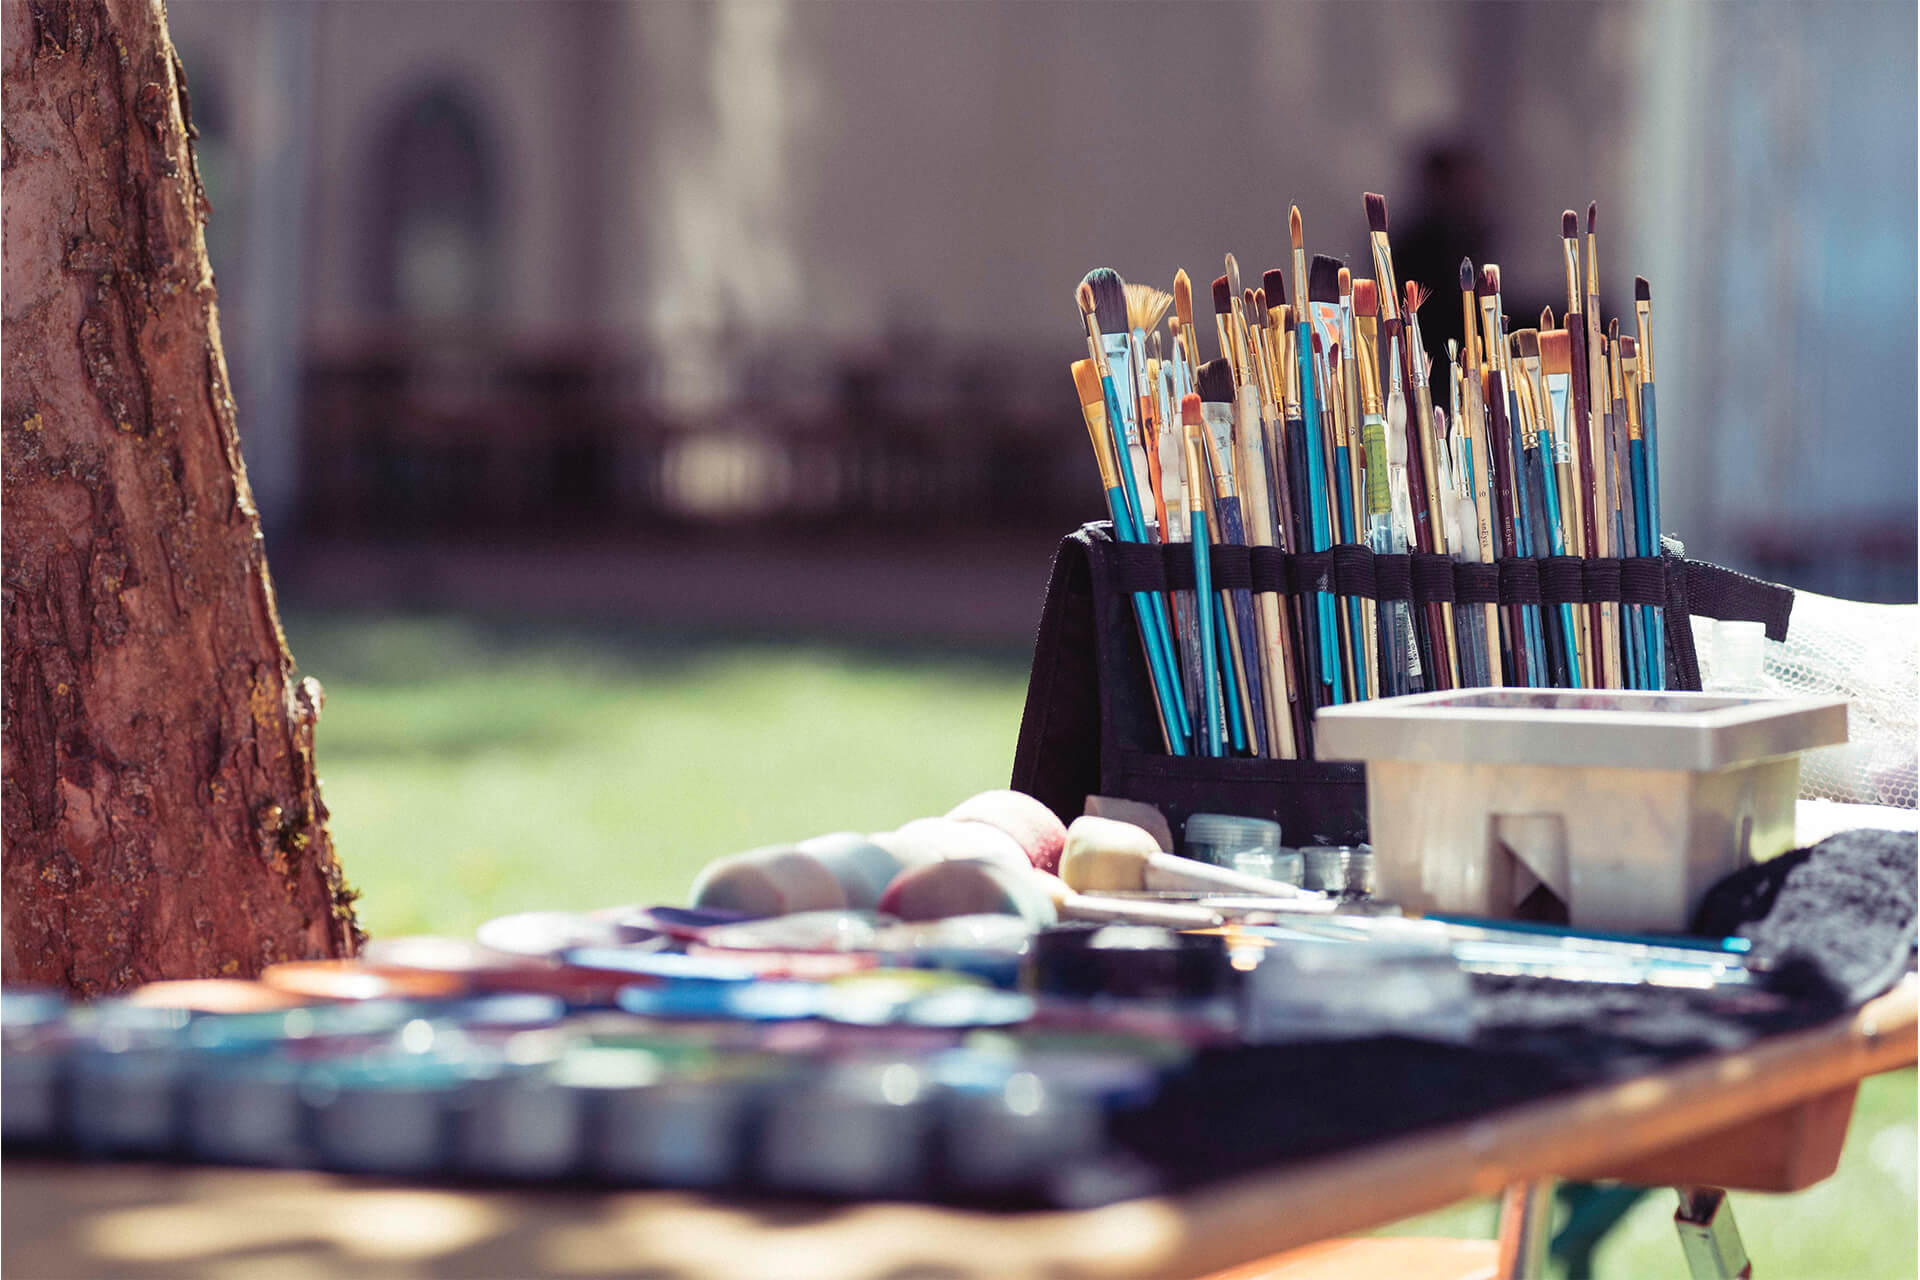 Outdoor painting set up with a number of brushes and paints on a table next to a tree